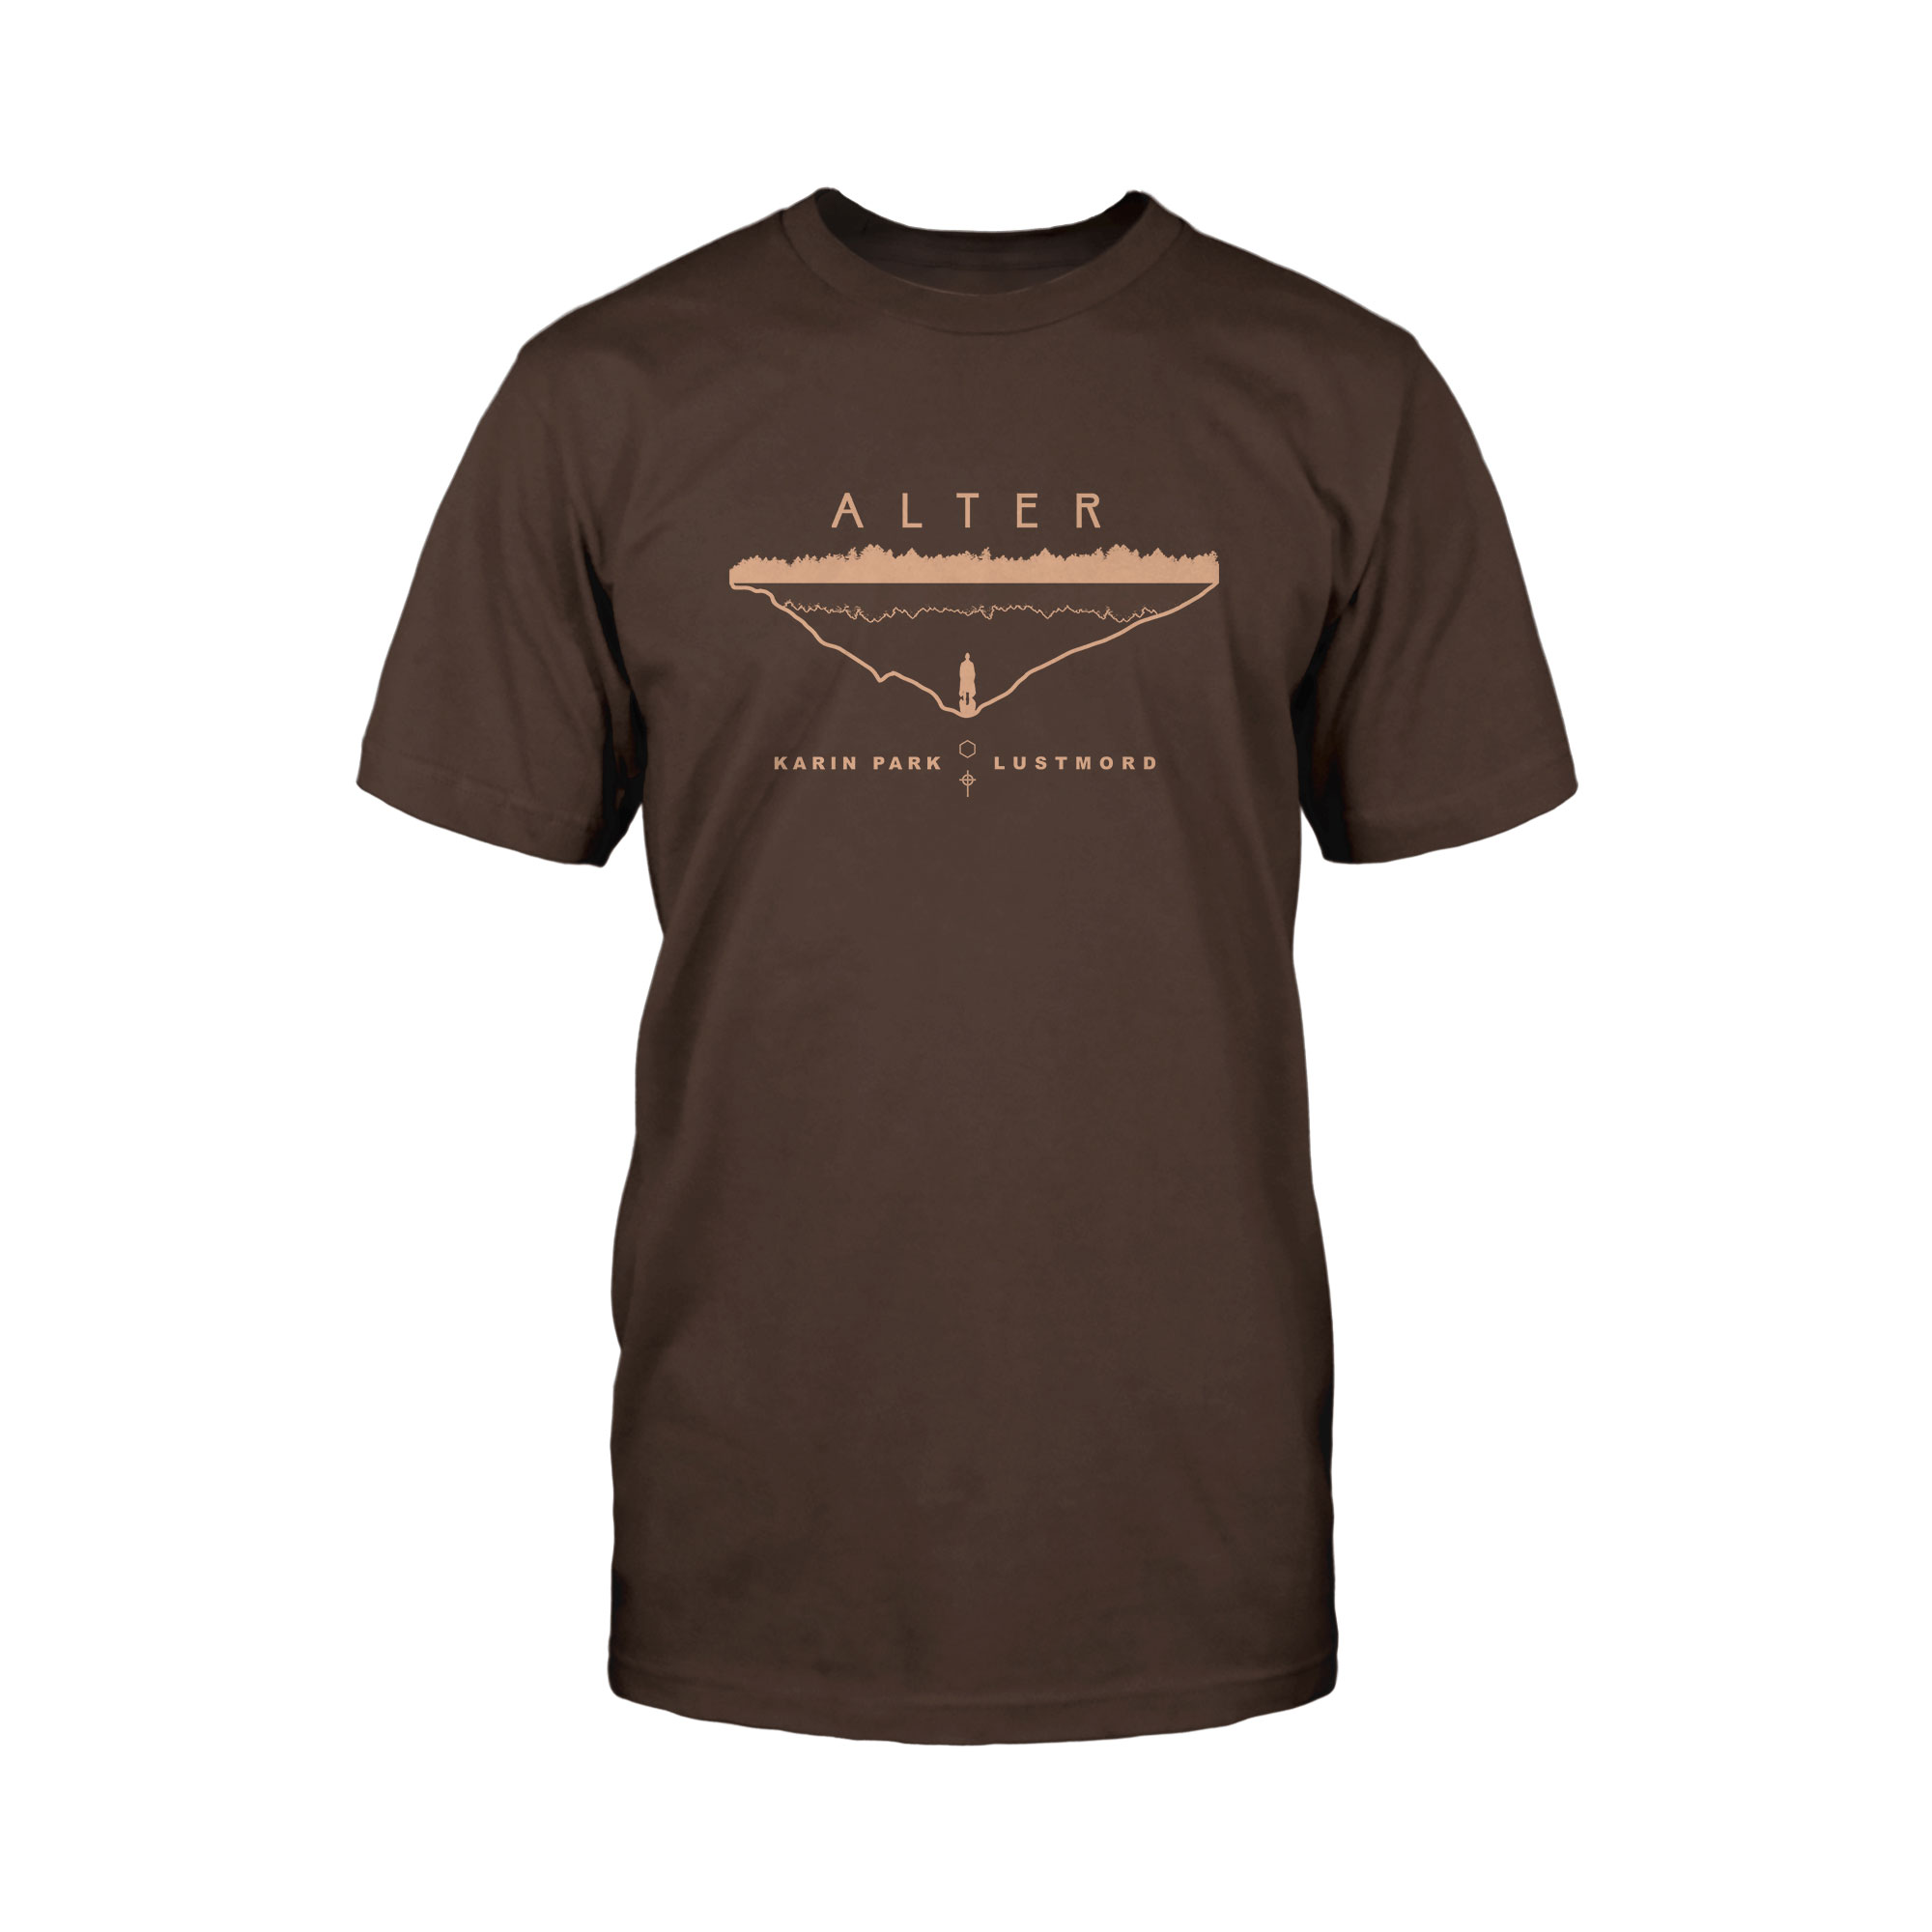 ALTER (brown)